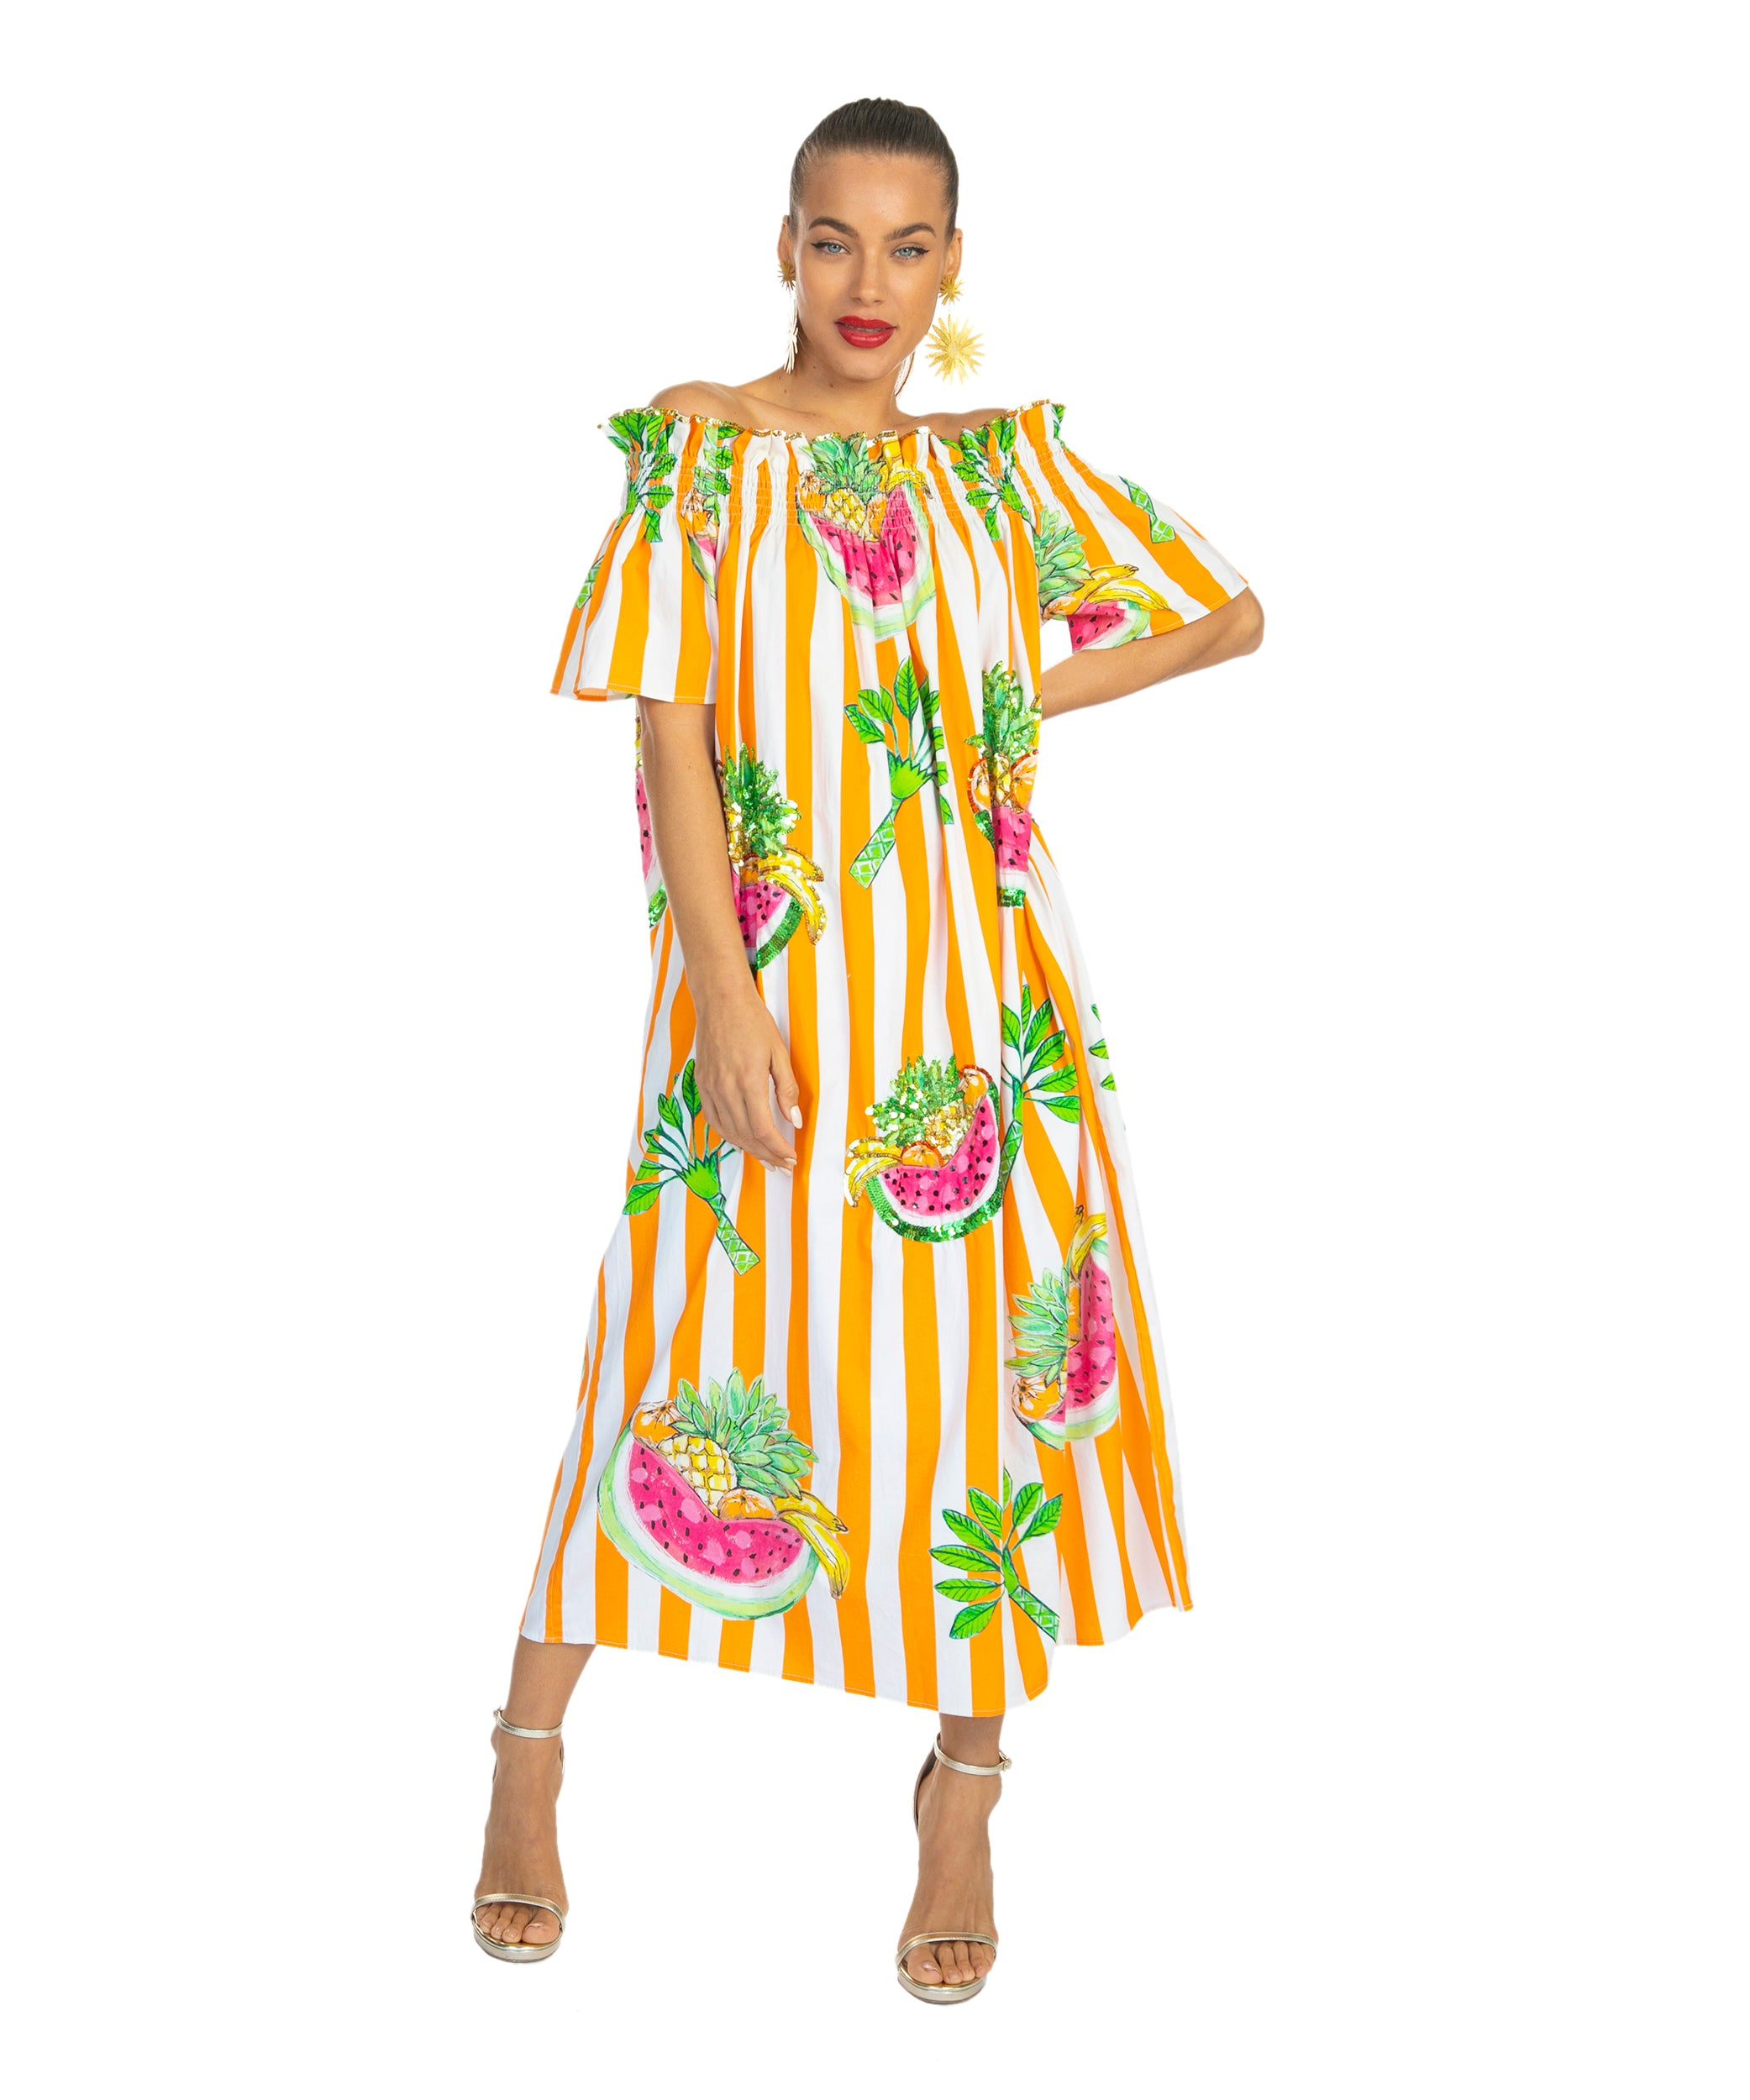 The Carmen Miranda OTS Dress by Bonita Collective